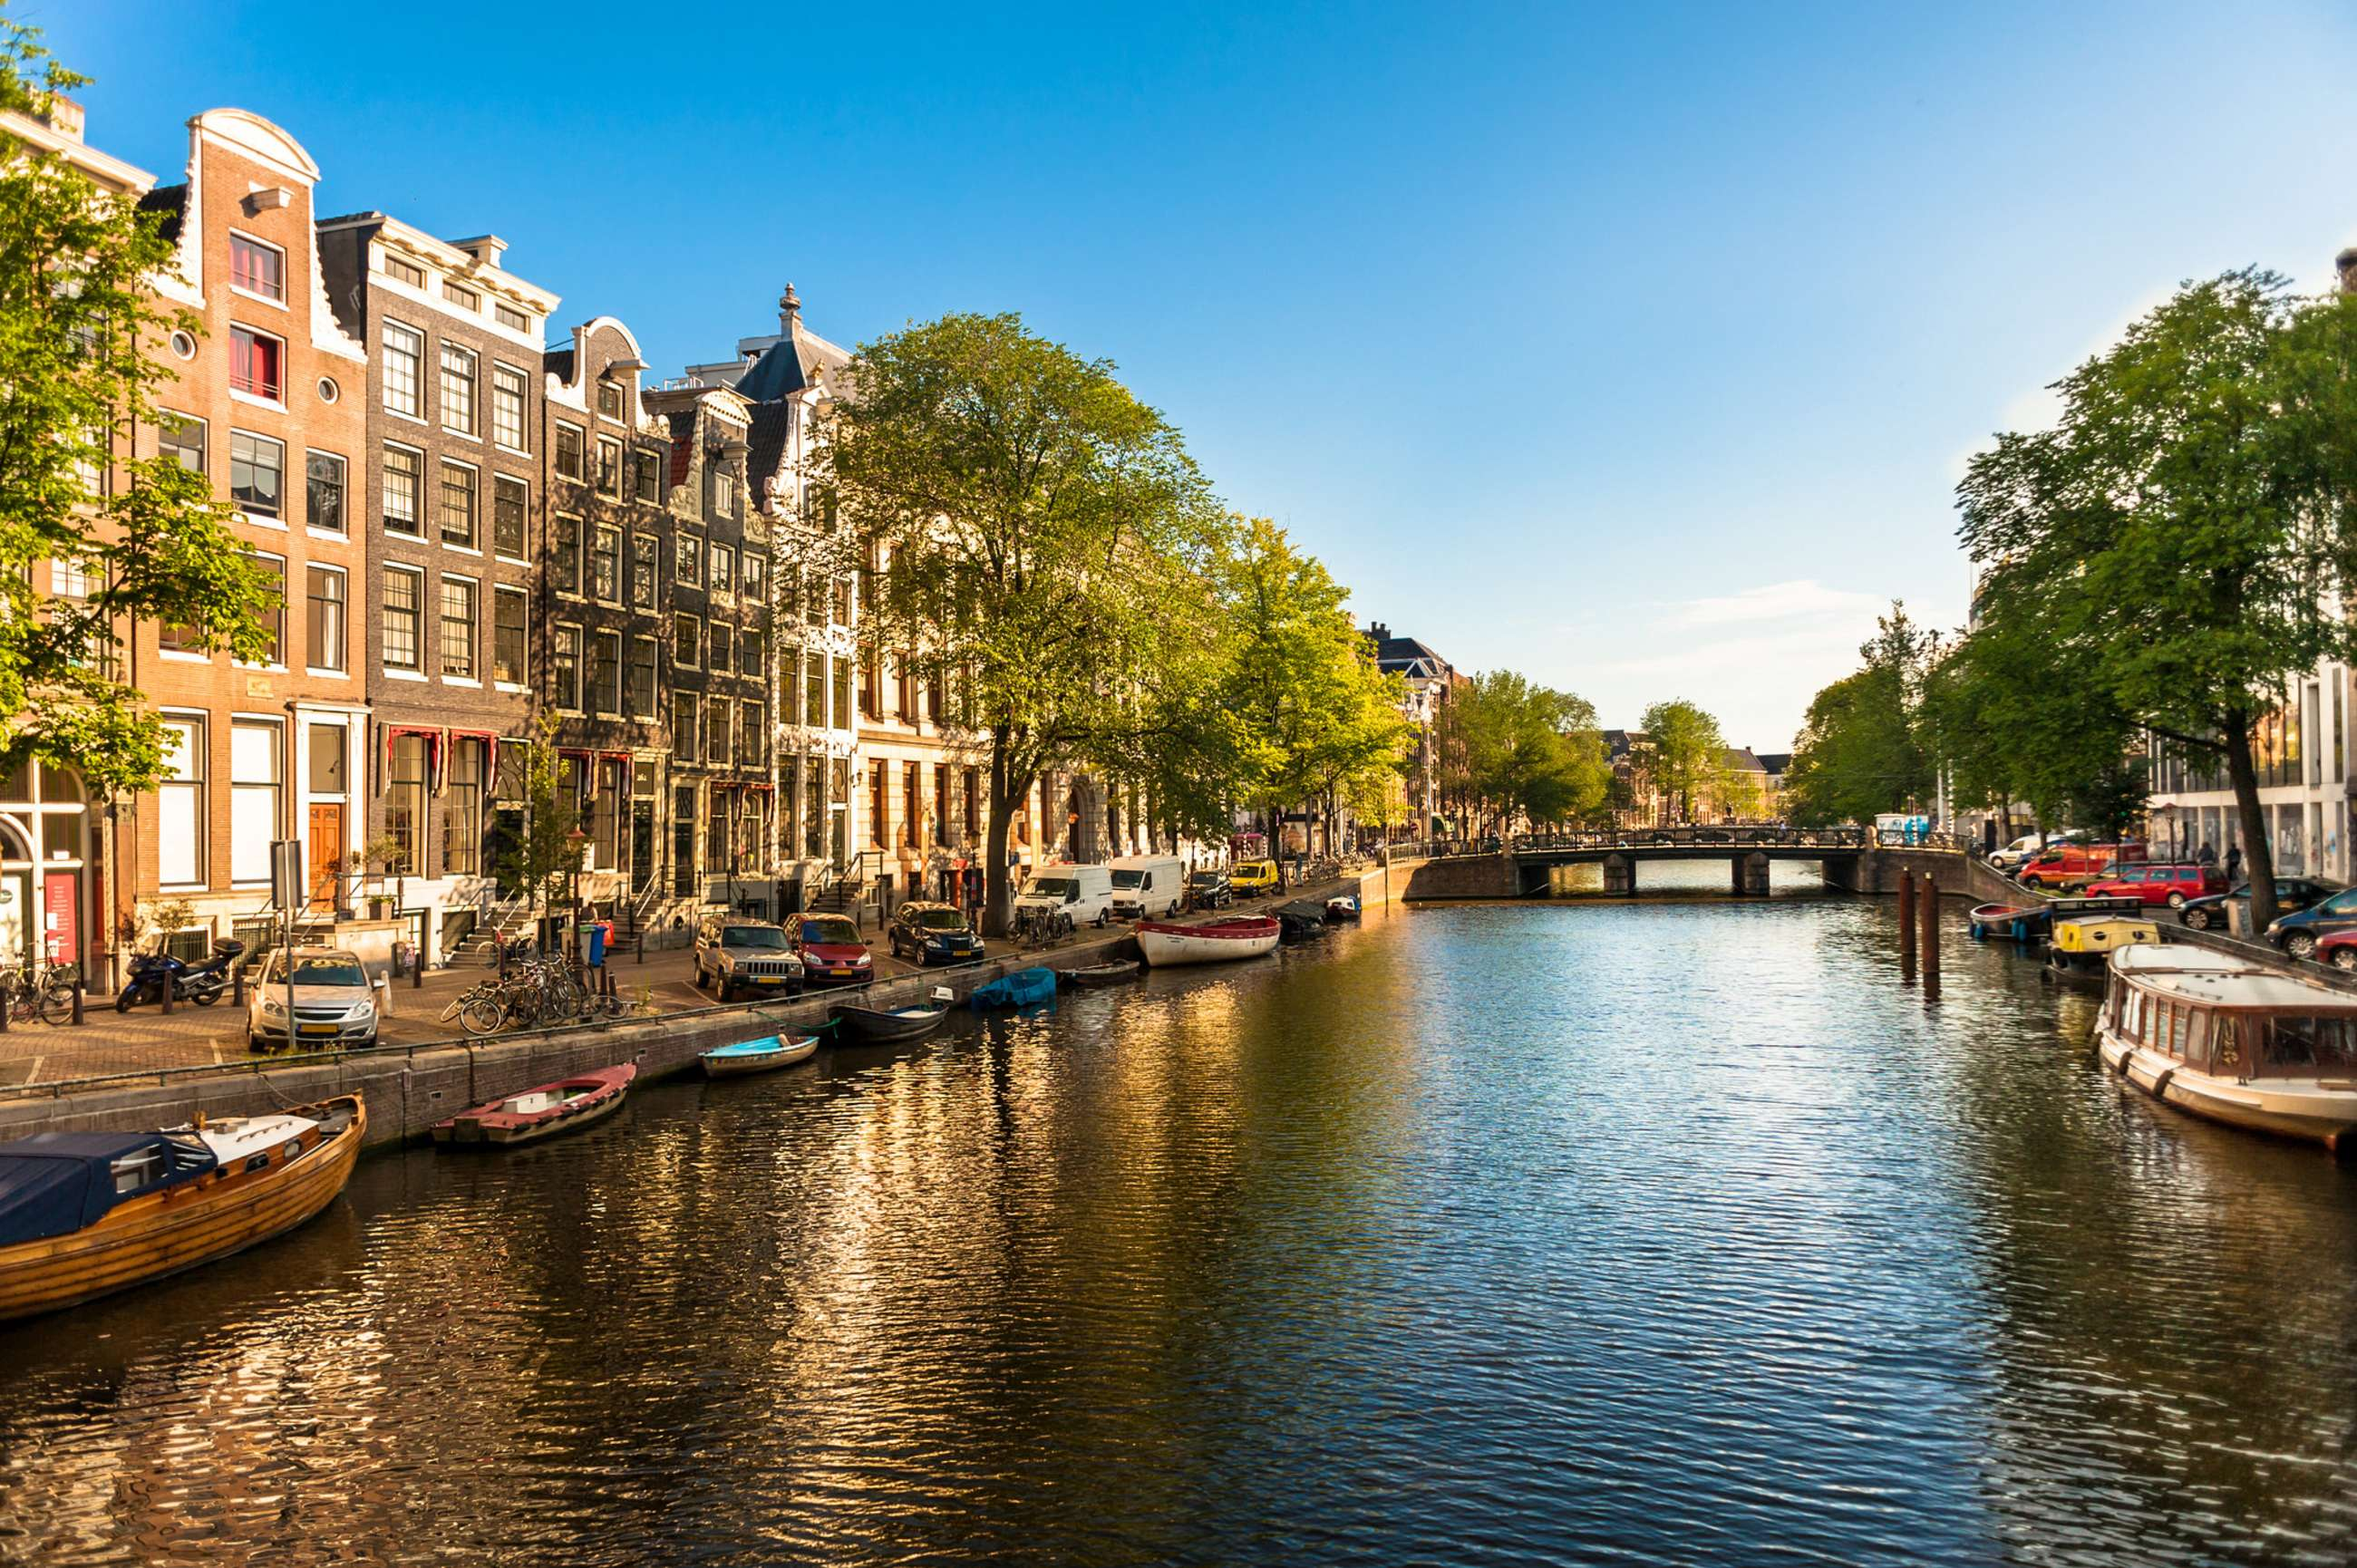 Amsterdam Private Tours and Amsterdam Small Group tours